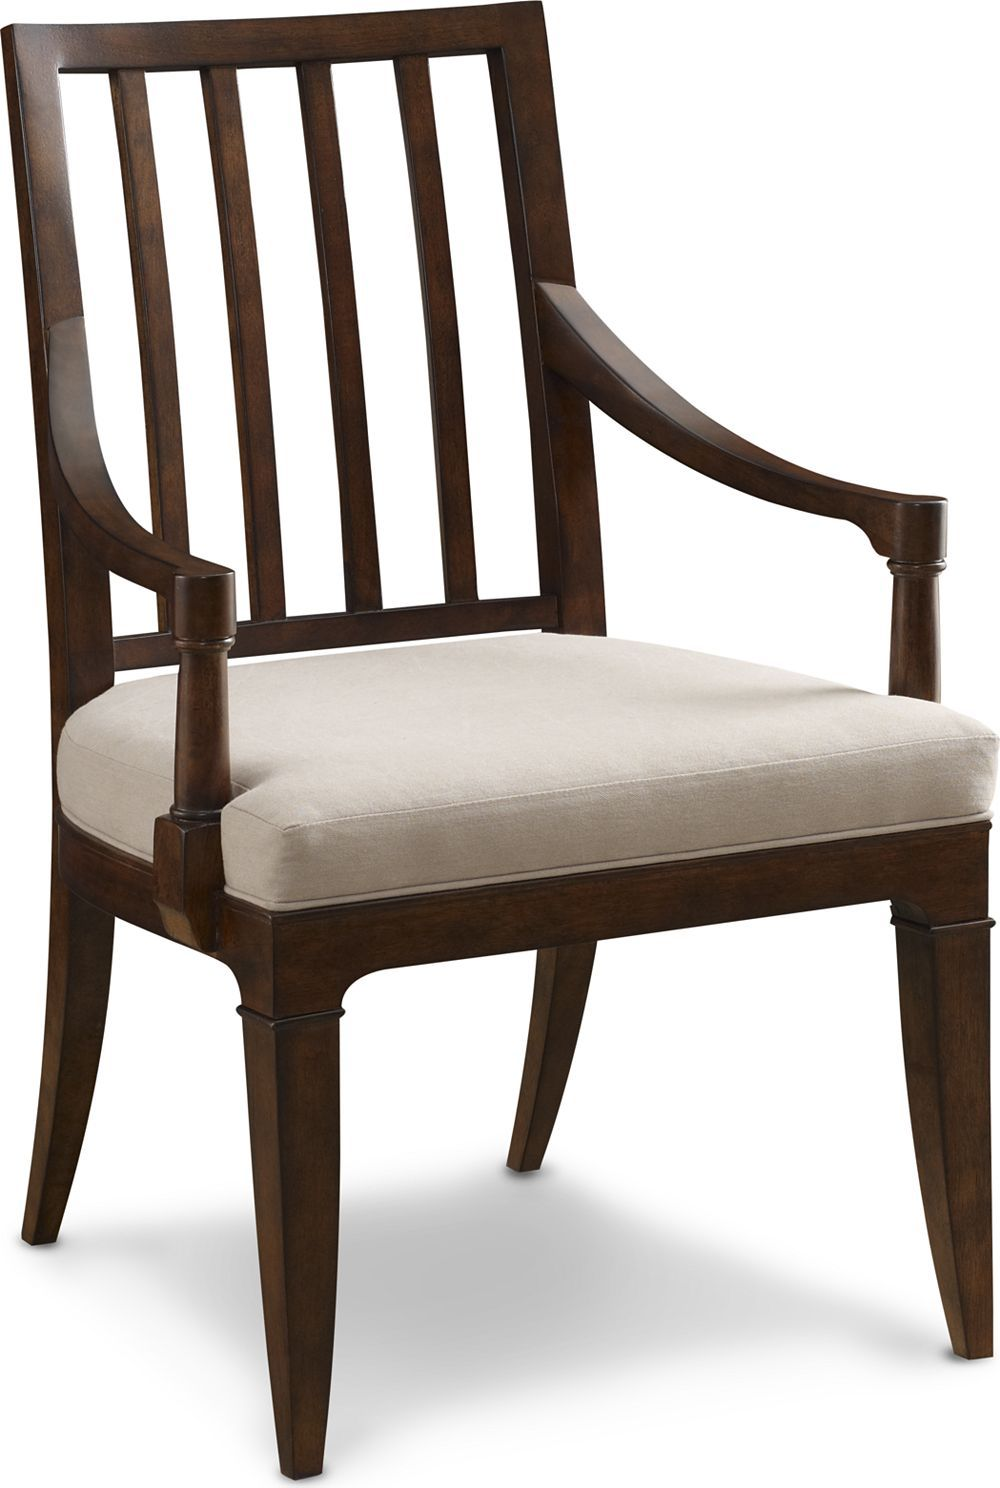 Axel arm chair thomasville designers are also brilliant